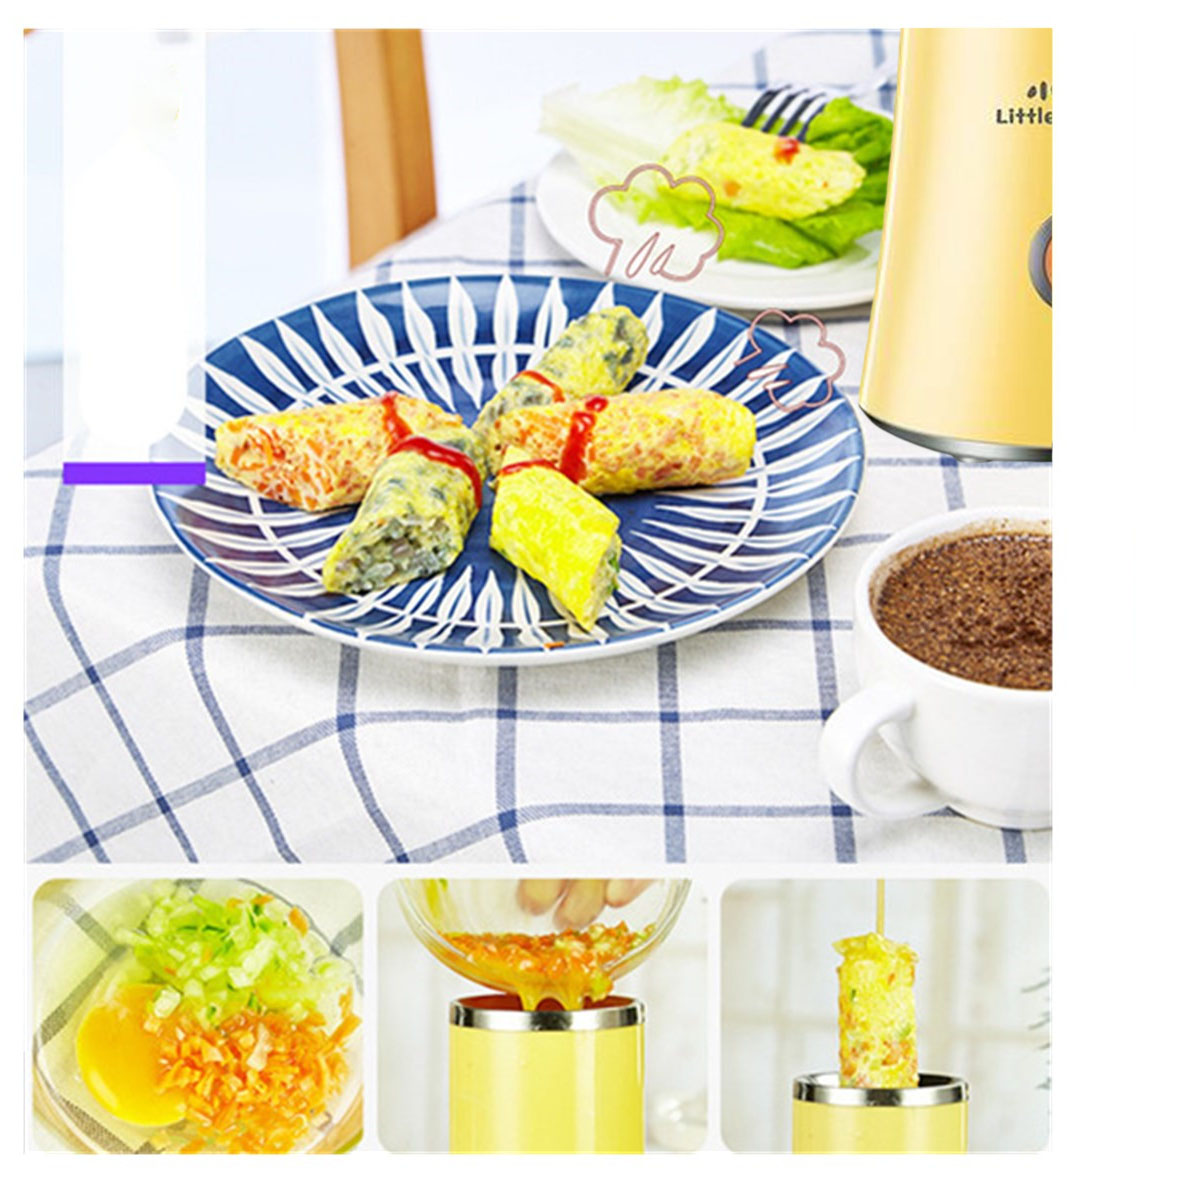 Electric Eggroll Maker Egg Roll Boiler Omelette Sausage Frying Cooking Tools Egg Boiler CN Plug